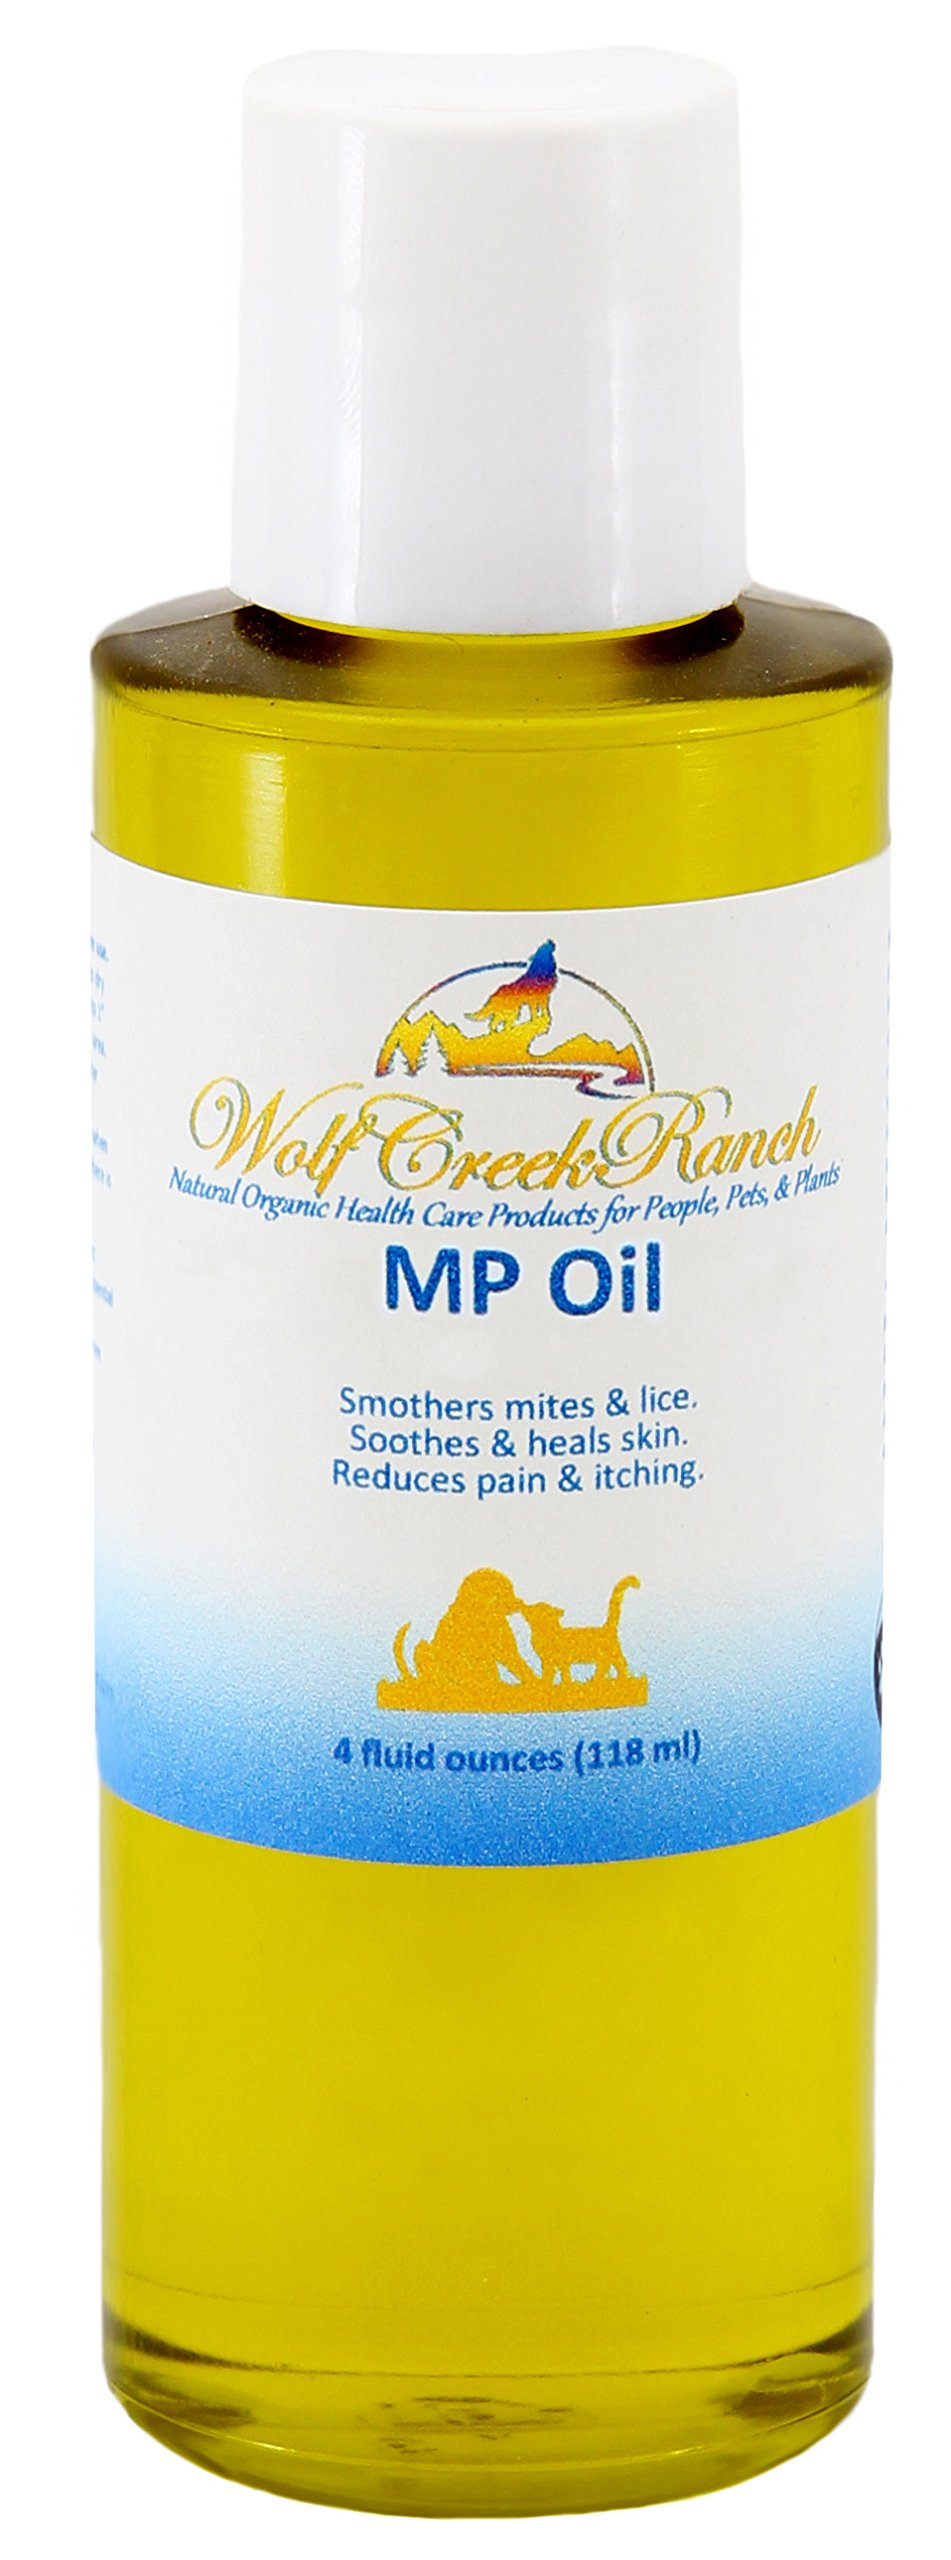 MP Oil – Natural Effective Mange, Mite, Itch Relief, Hot Spots, Itchy Skin, AllerHgies, Dry Nose, Cracked Paws, Promotes Hair Growth, Skin ealing Treatment for People, Pets, & Animals (4 oz.)